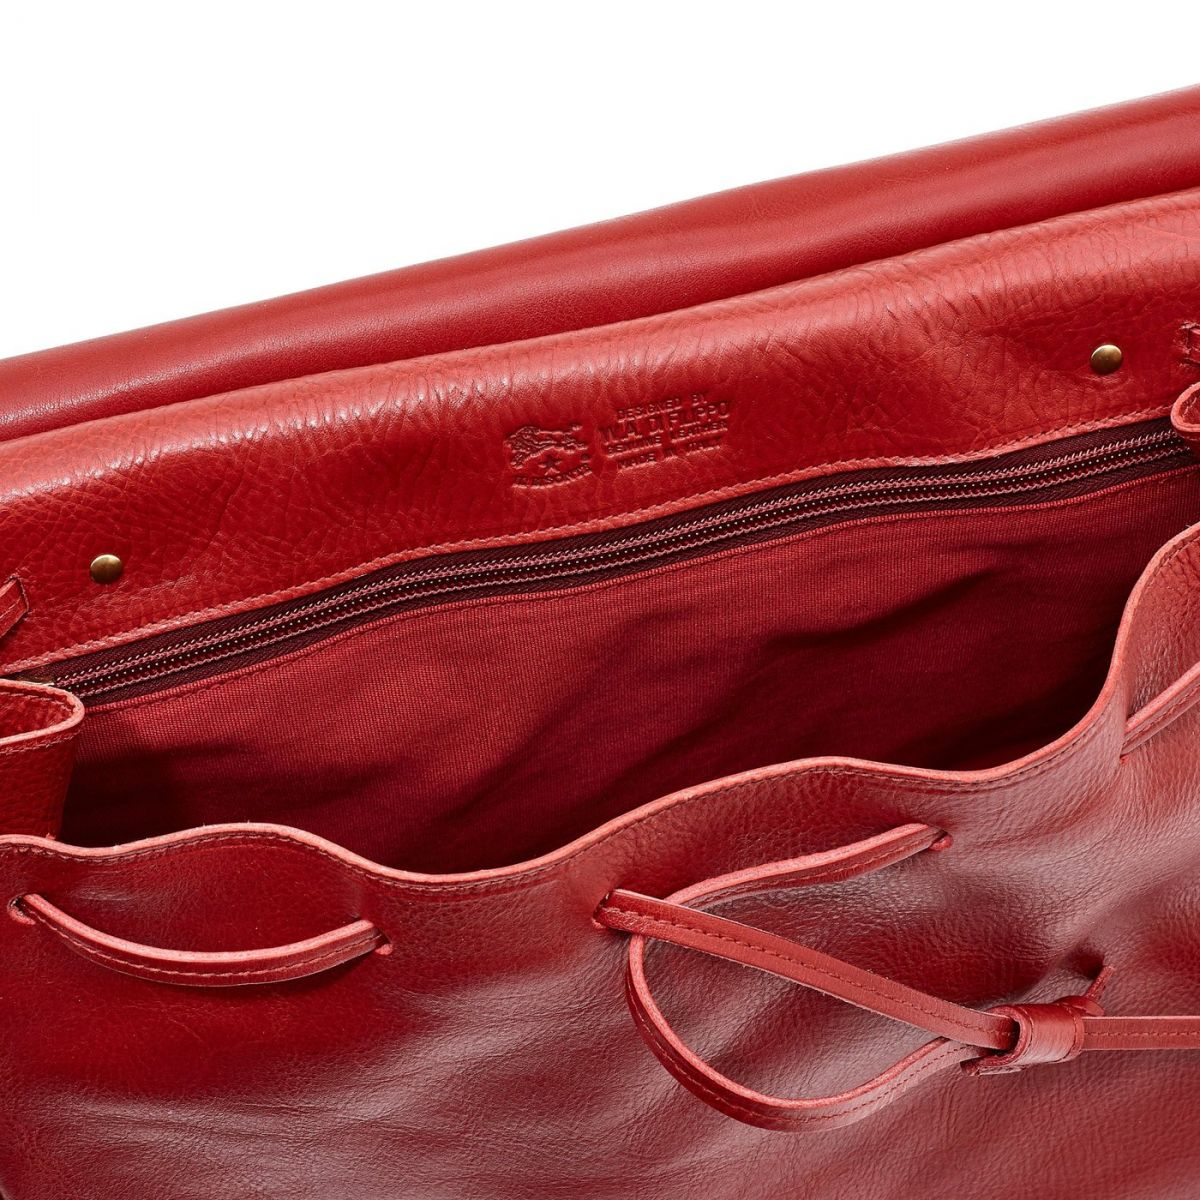 Women's Handbag Tornabuoni in Cowhide Double Leather BTH051 color Red | Details